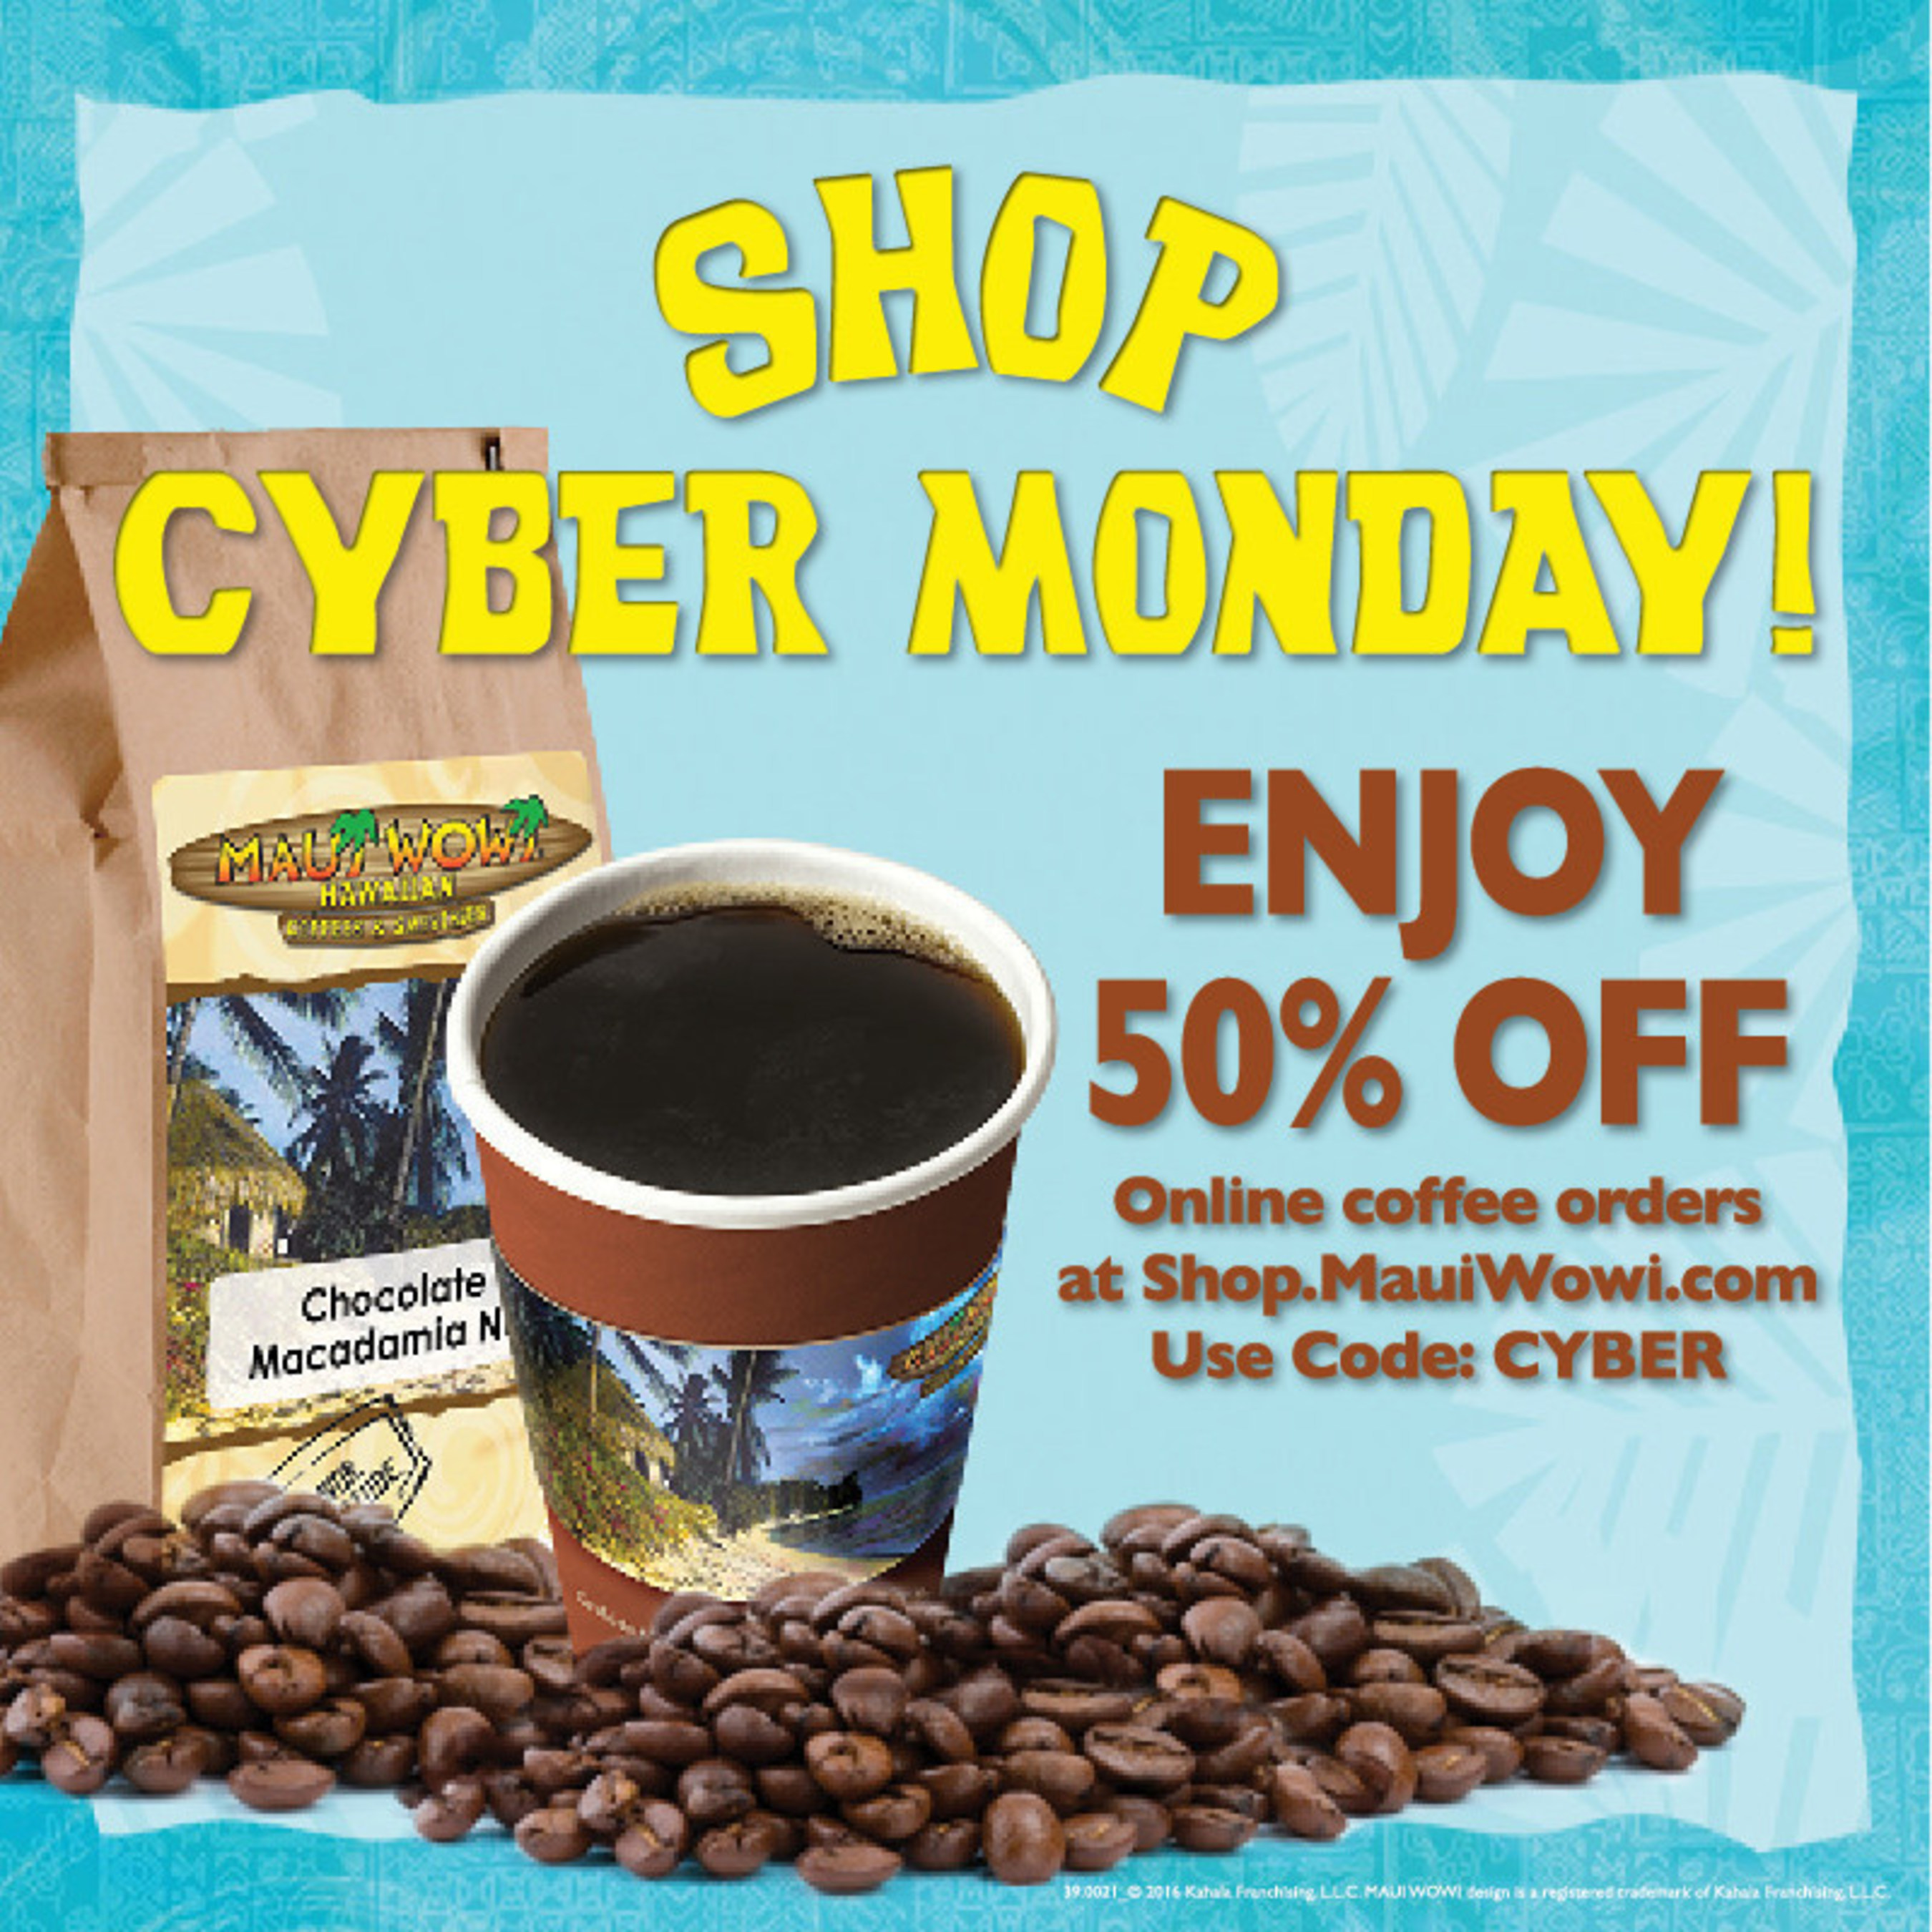 Maui Wowi Coffee 50% off for Cyber Monday at shop.mauiwowi.com.